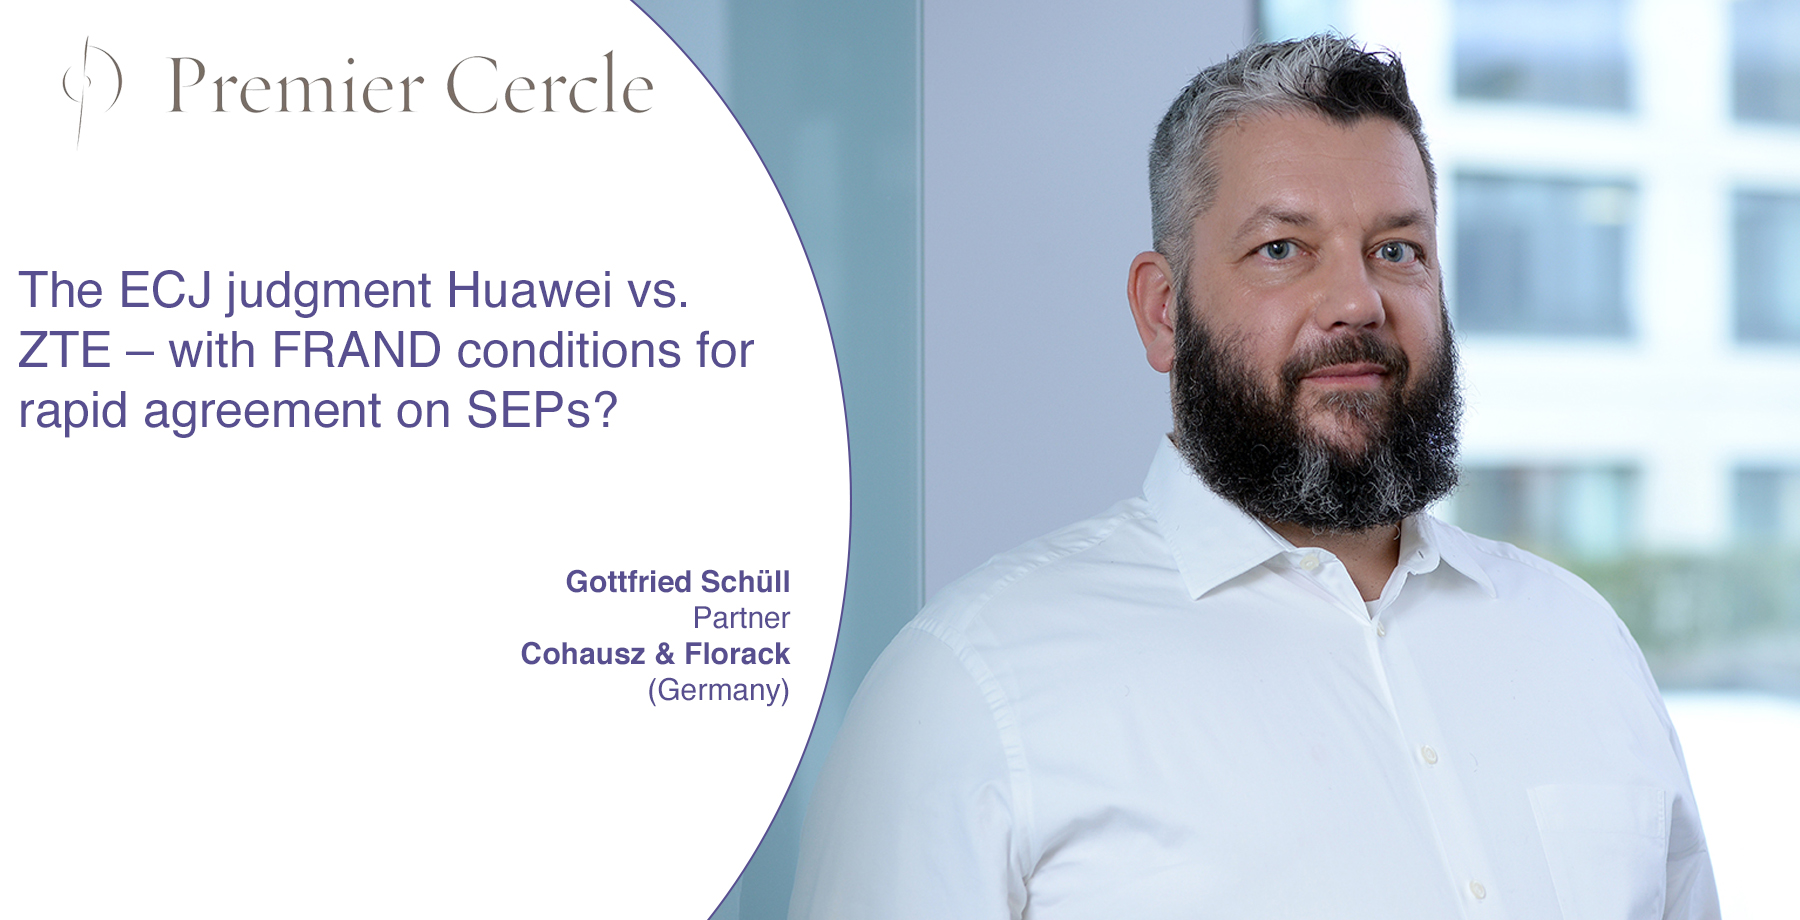 The ECJ judgment Huawei vs. ZTE – with FRAND conditions for rapid agreement on SEPs?